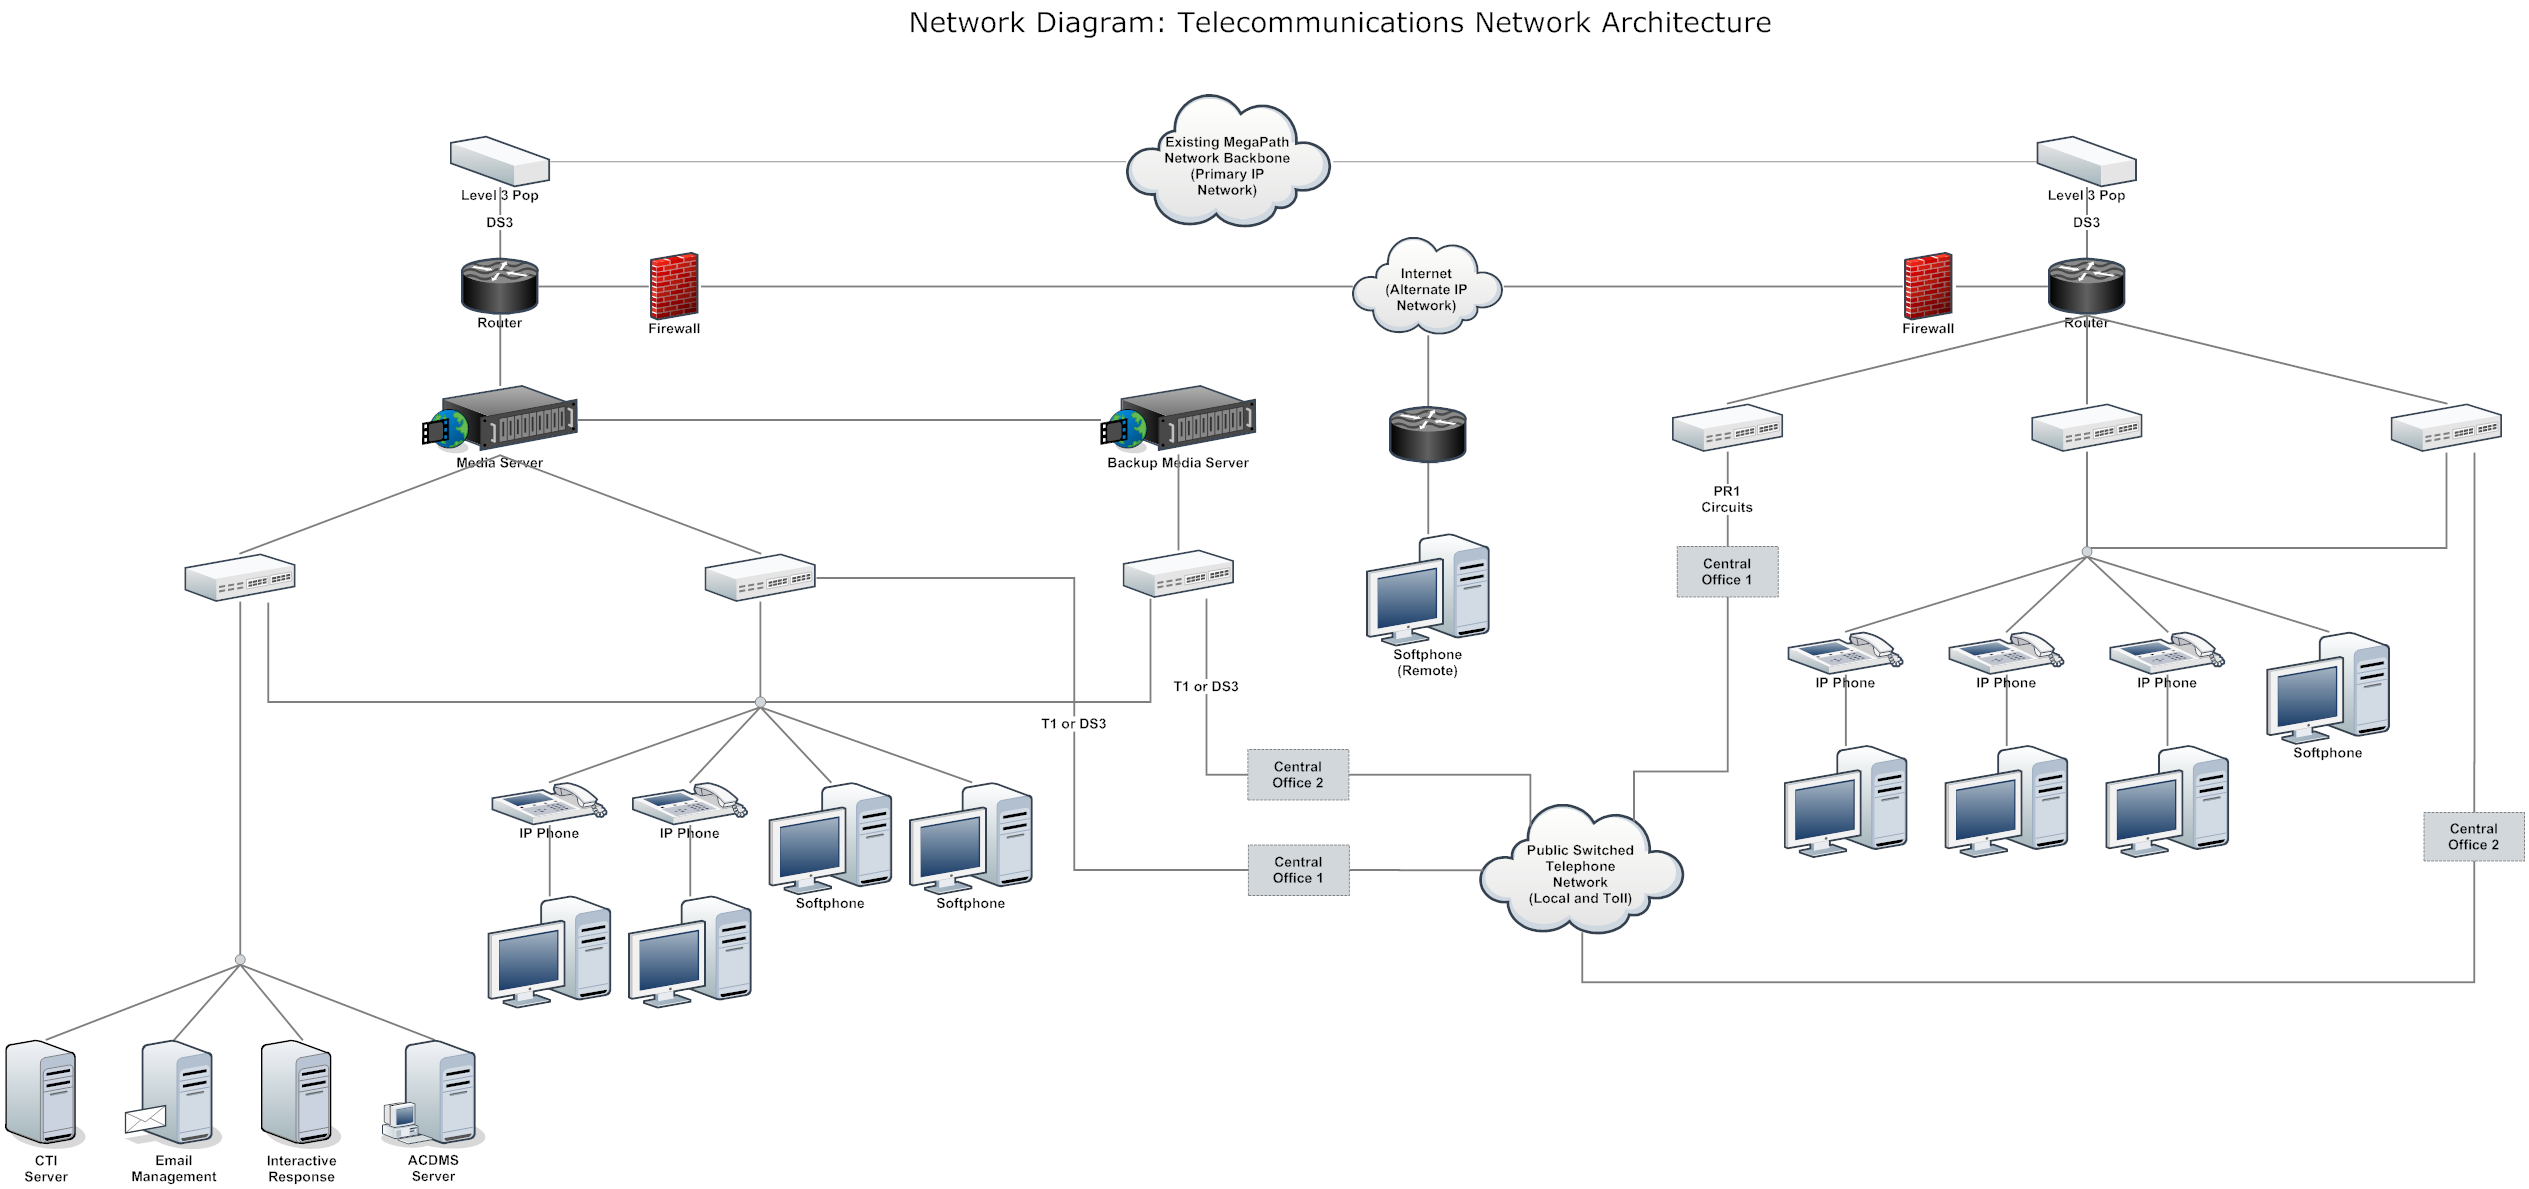 hight resolution of network diagram example telecommunnications network architecture network diagram example large multiprotocol network